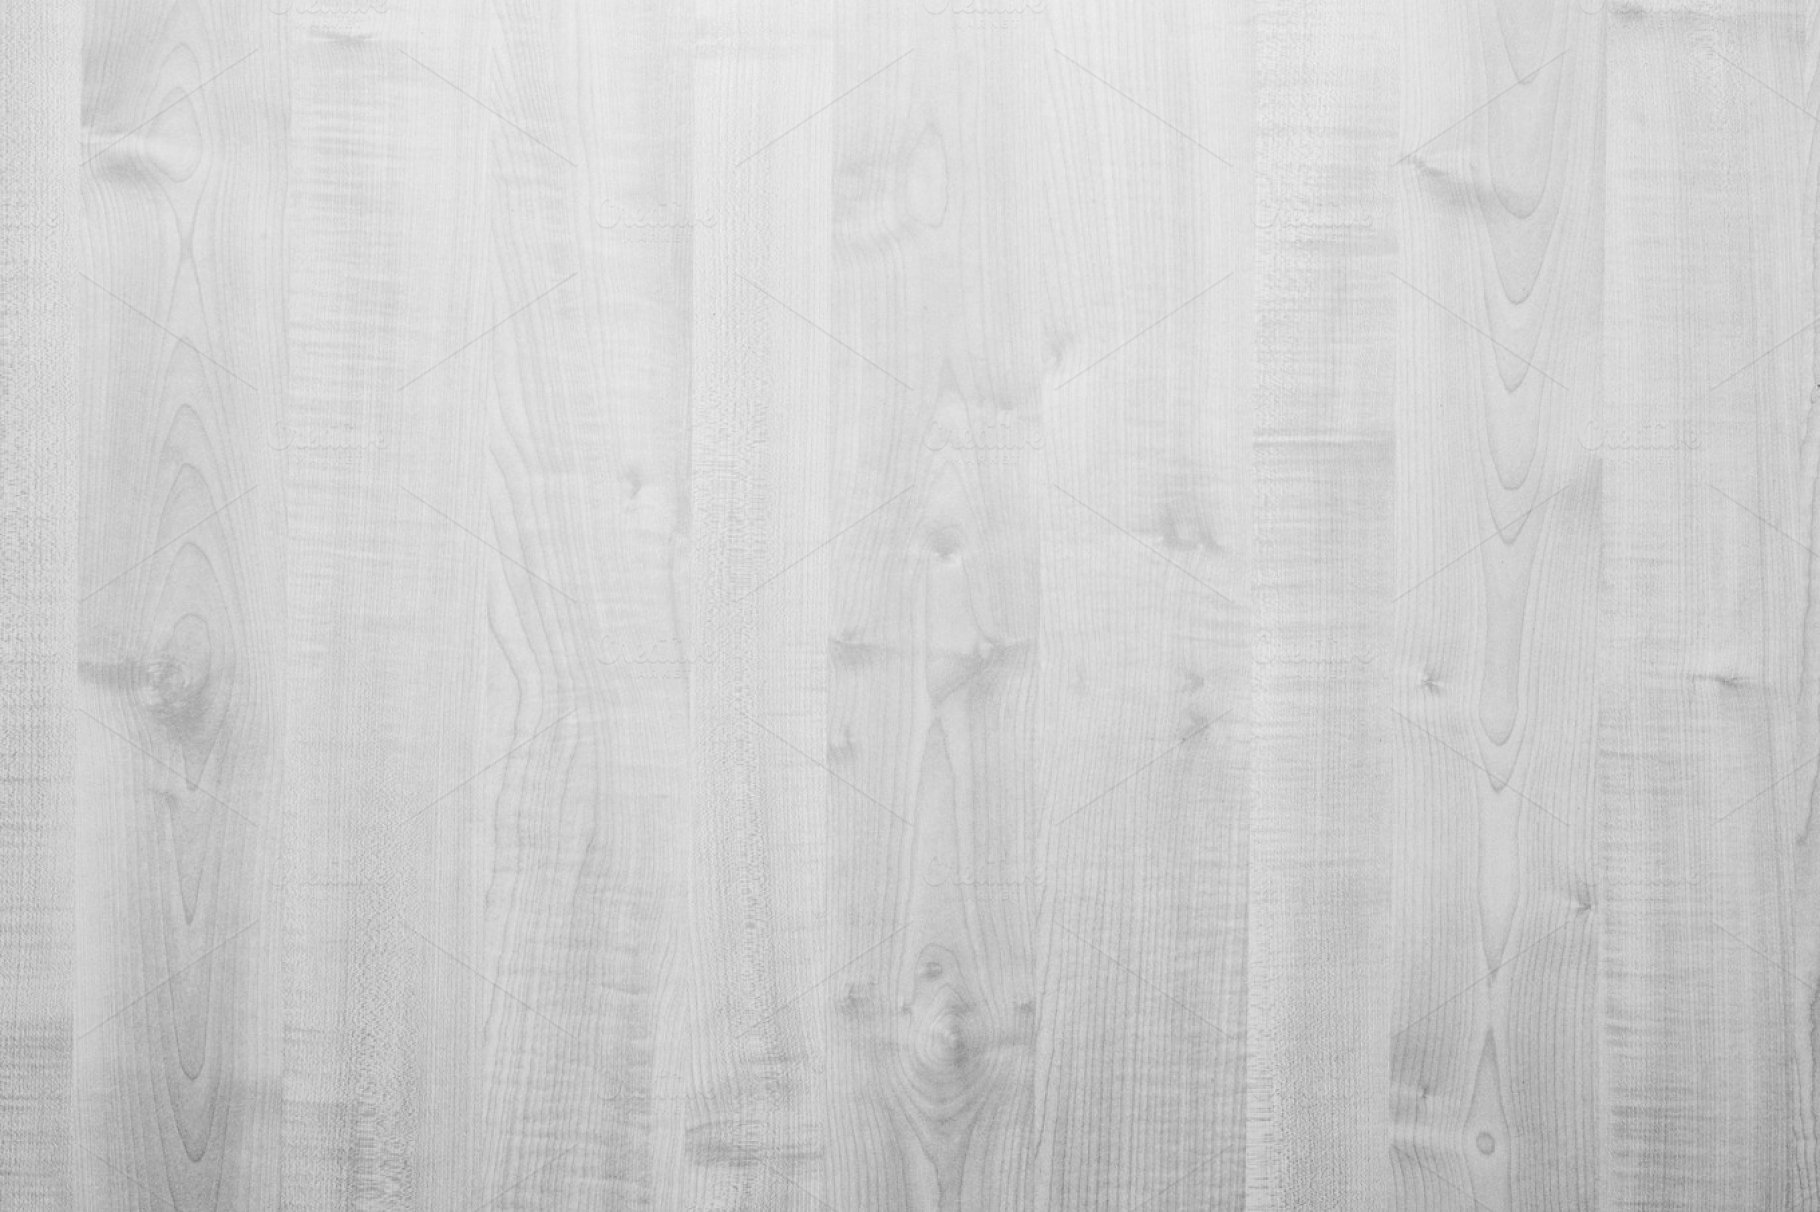 White rustic wood background